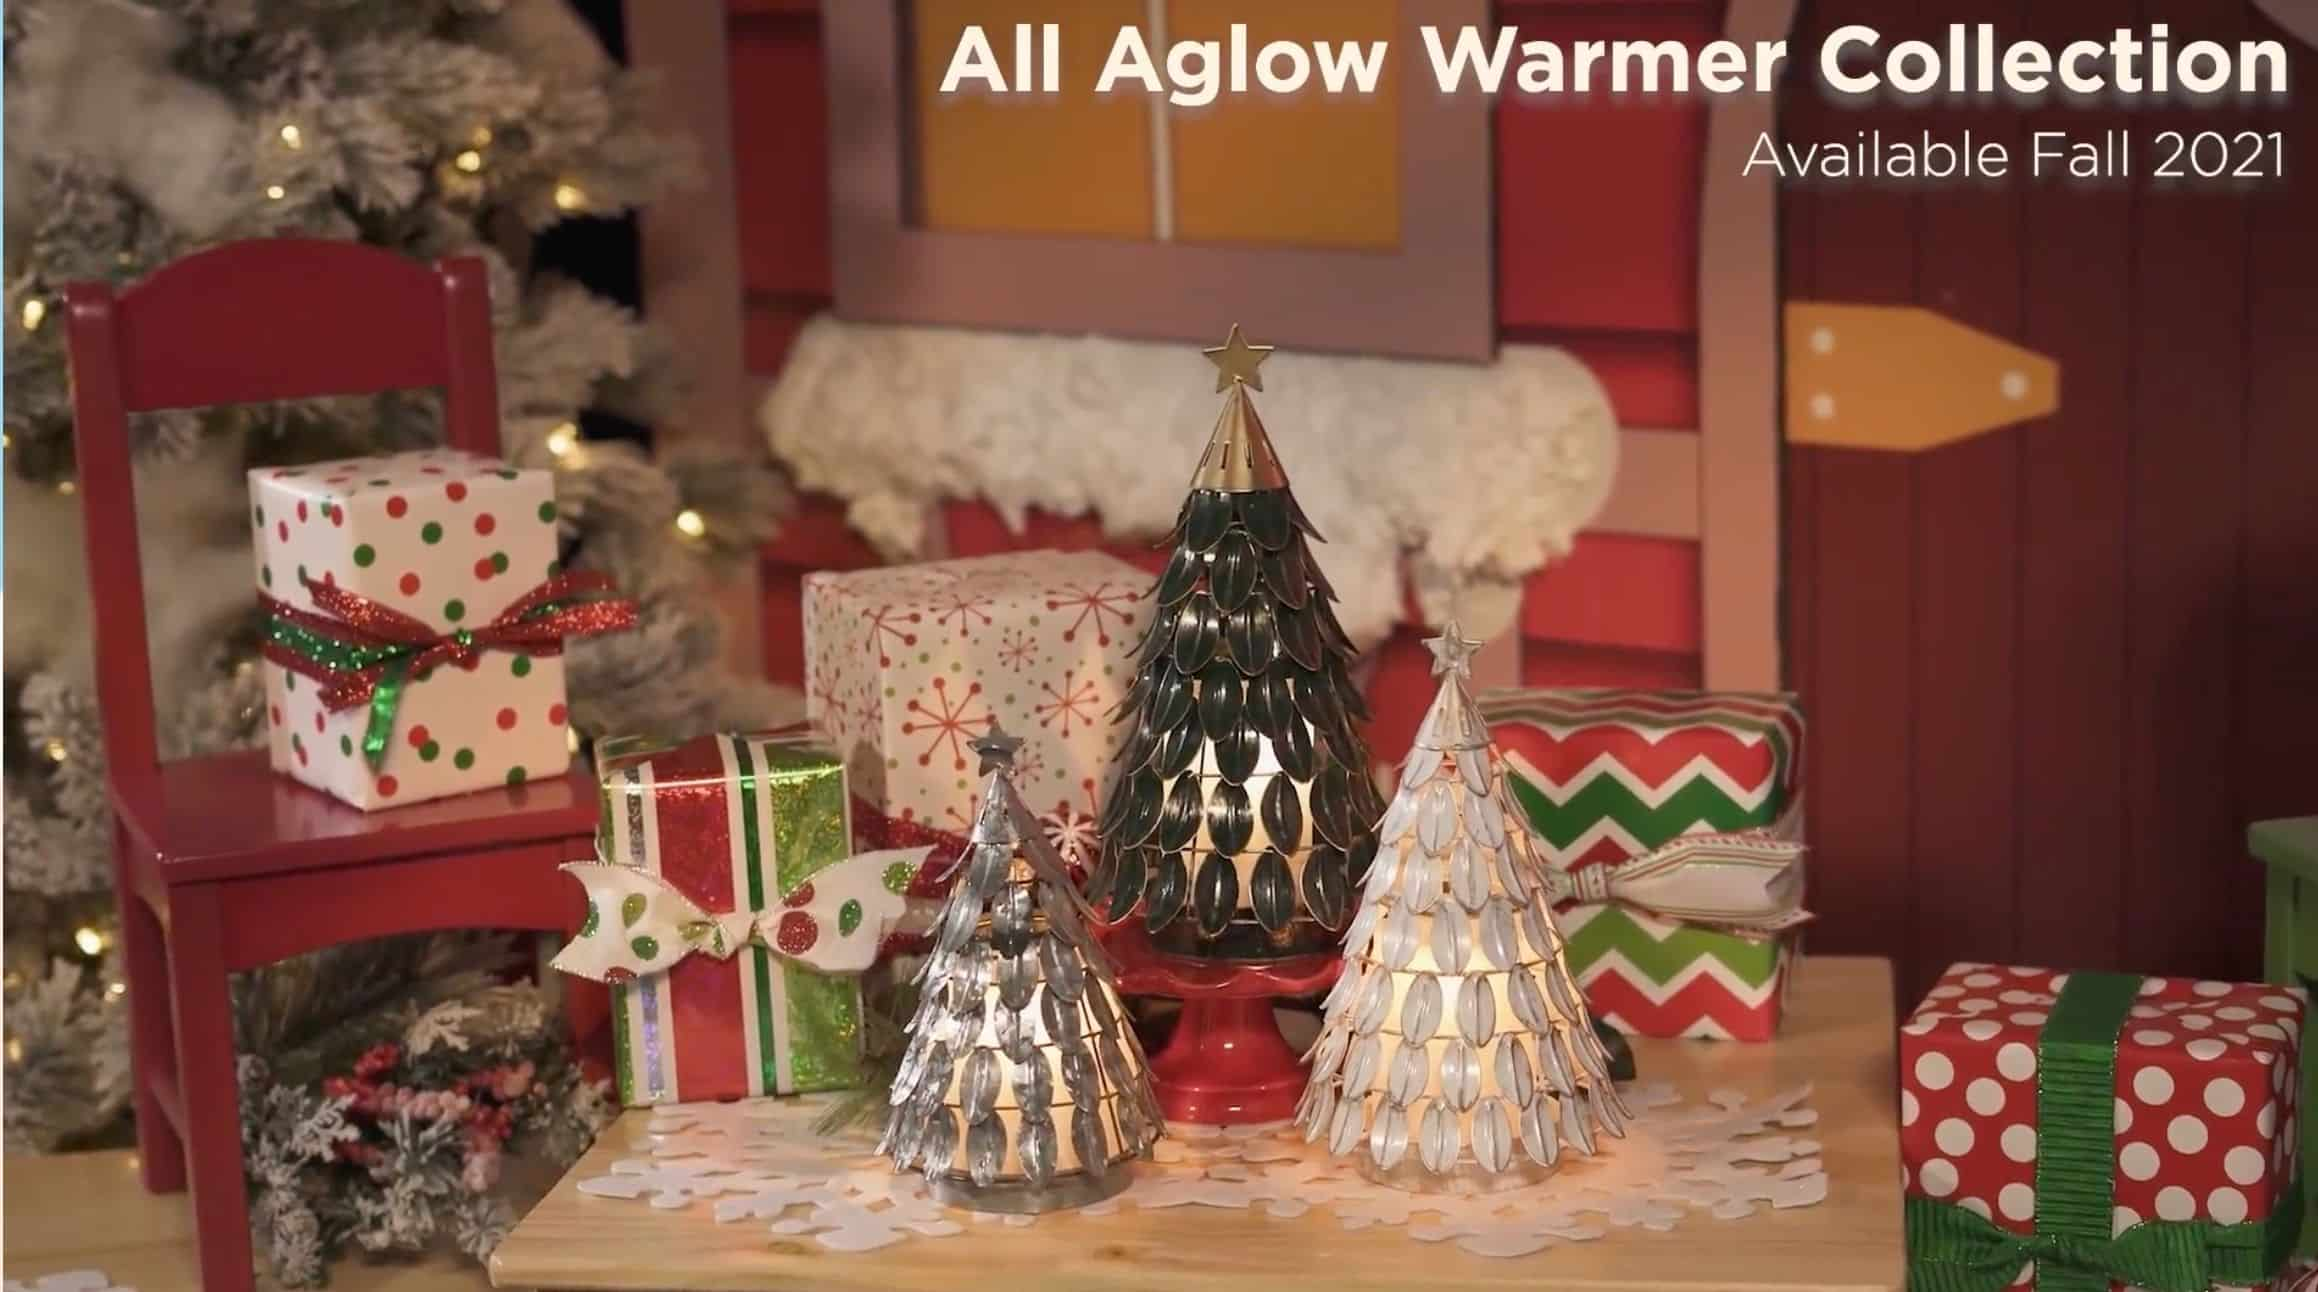 All Aglow Scentsy Warmer Collection Coming Fall 2021